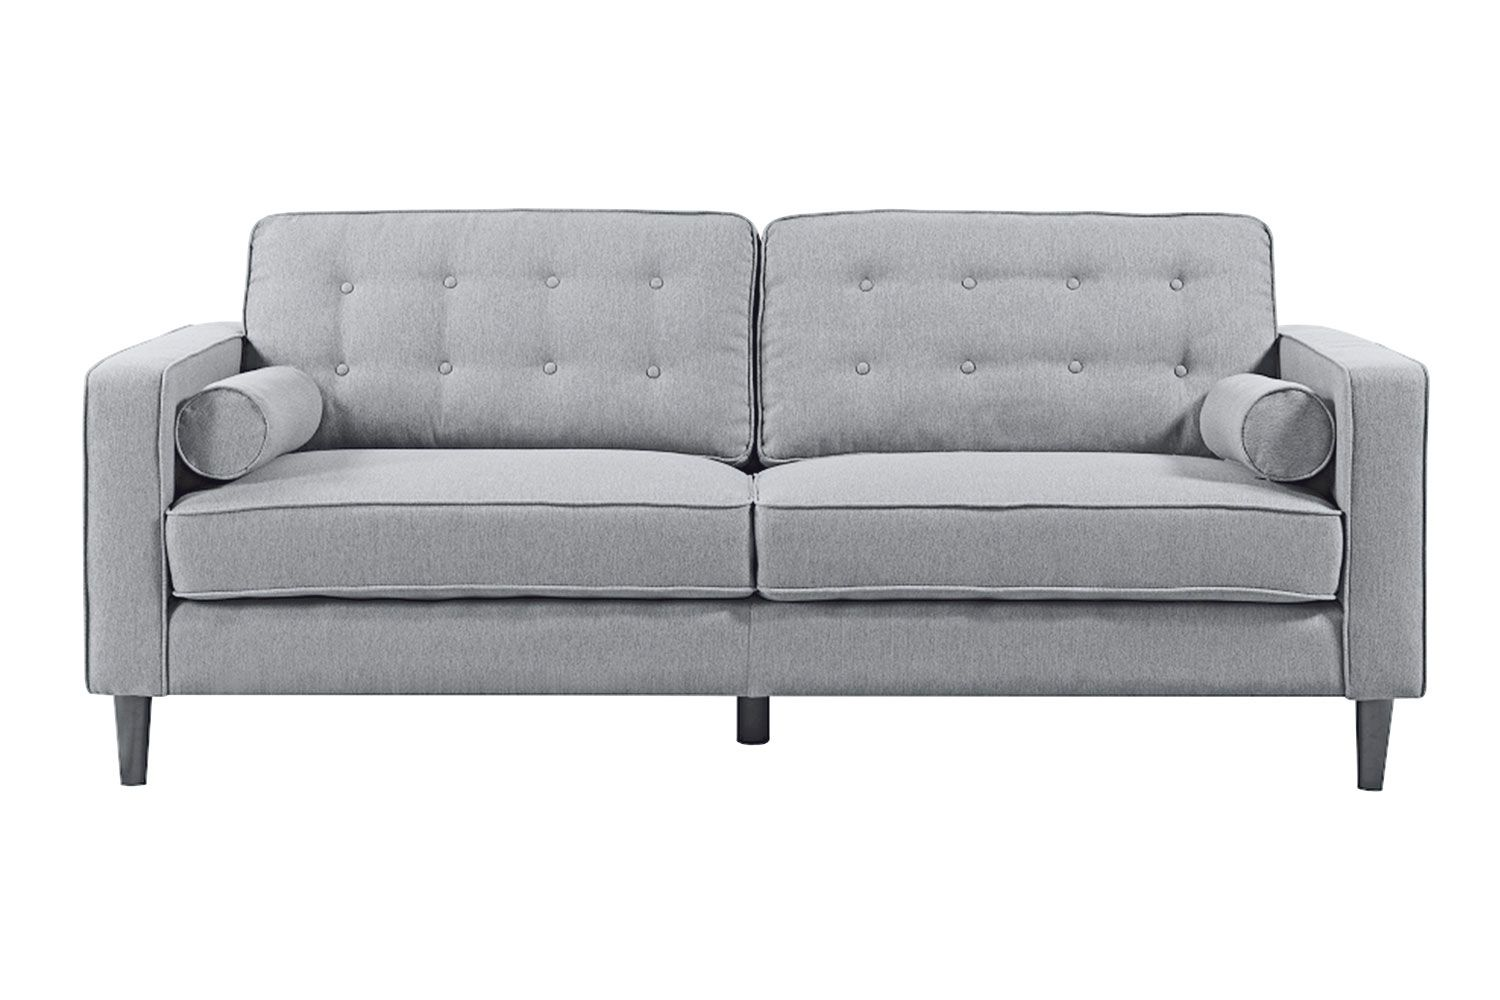 Scarlett seater sofa from harvey norman ireland claire